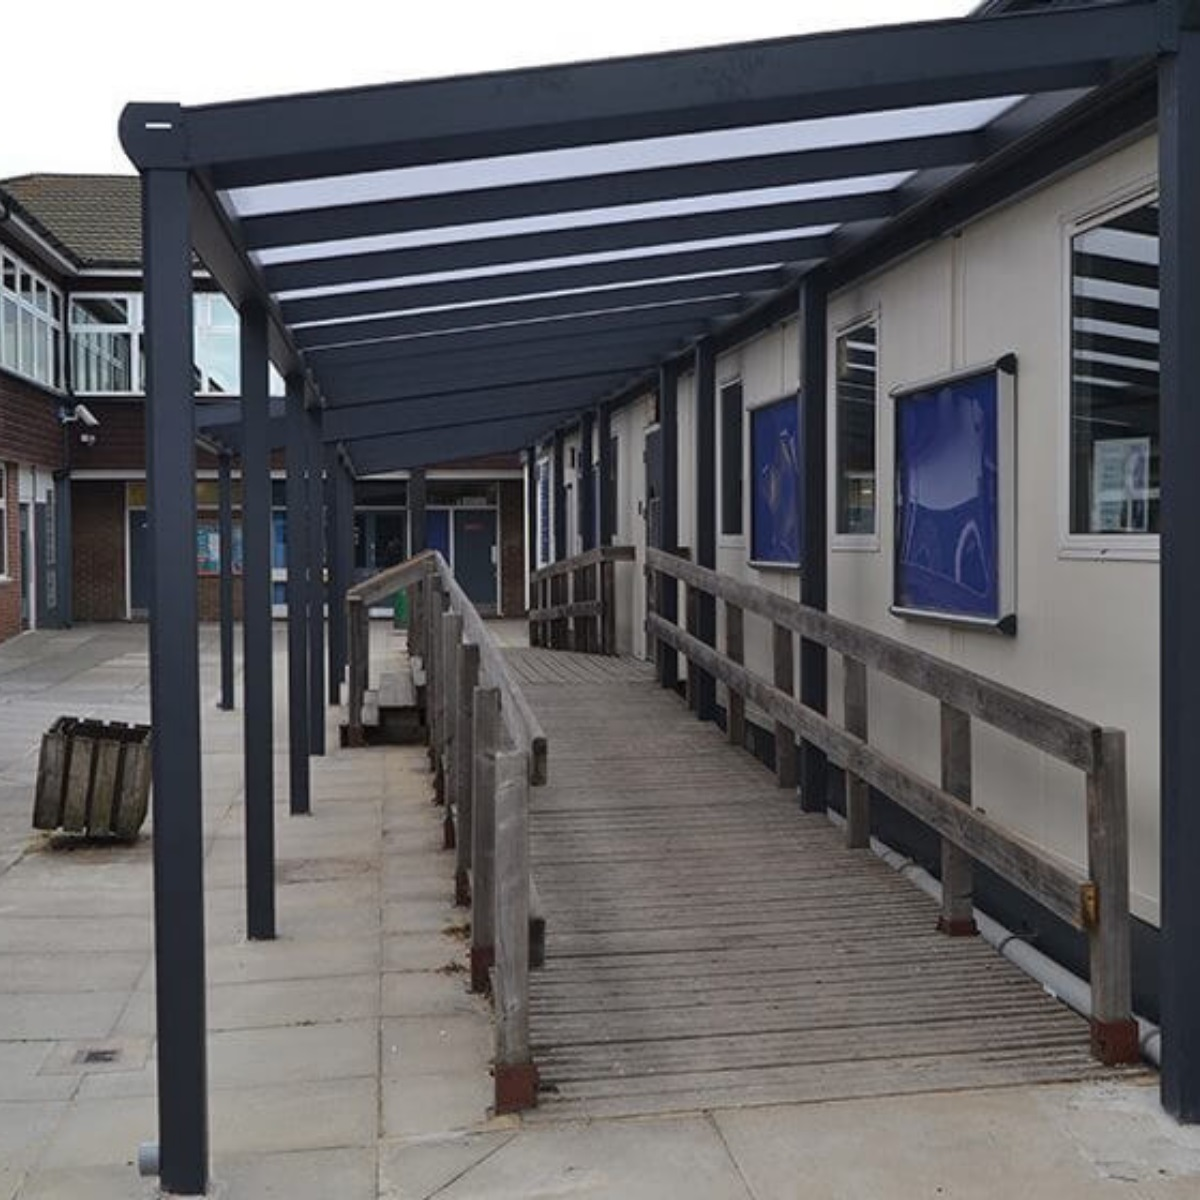 A metal framed covered walk way at a school